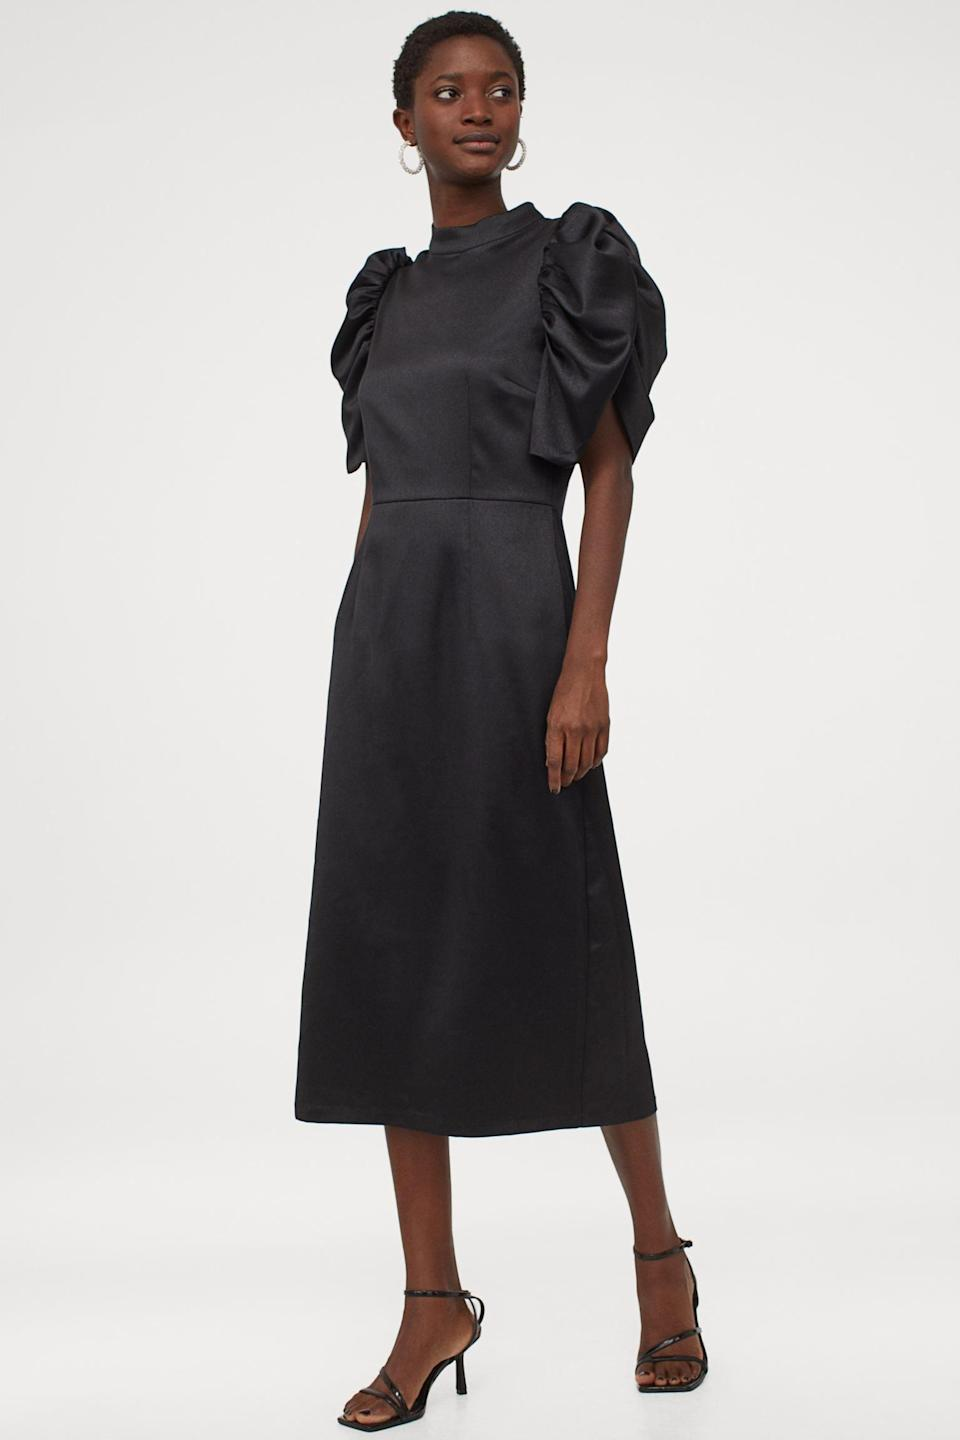 <p>This polished <span>Puff-sleeved Satin Dress</span> ($19, originally $40) is a failsafe choice for any outing. We are in love!</p>